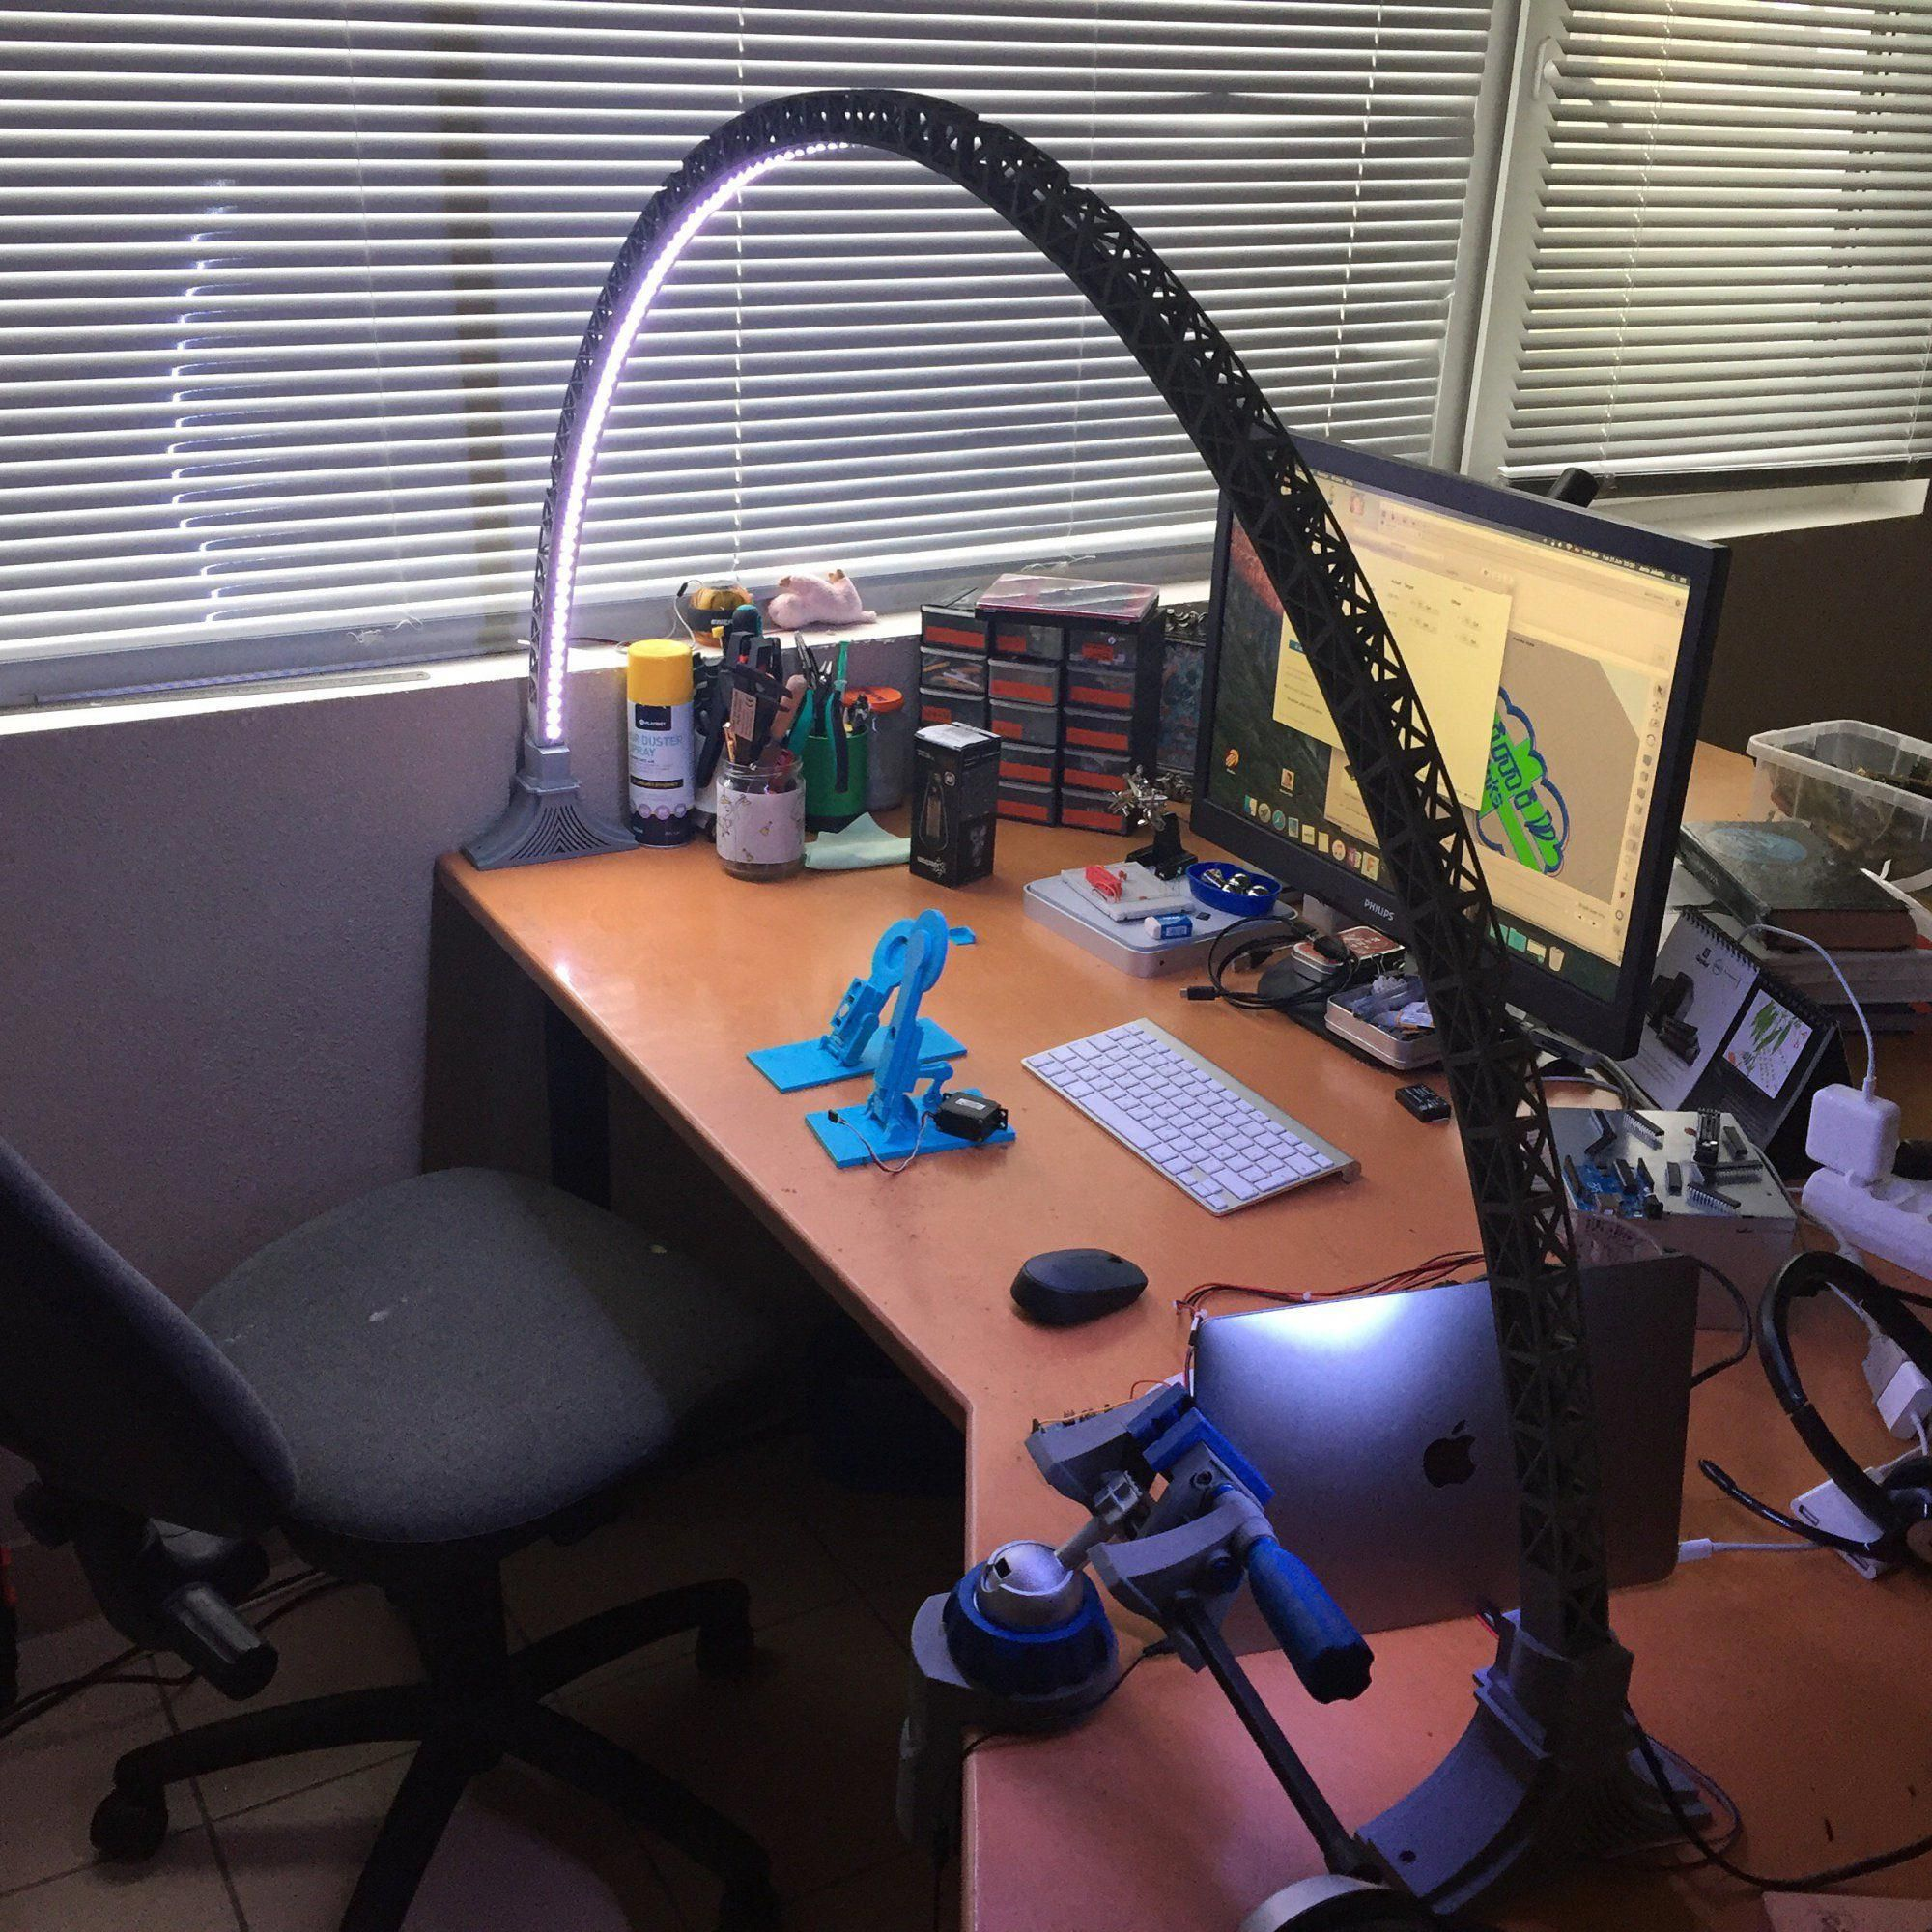 This Architecturally Inspired Led Lighting Is 3d Printable And Arches Over Your Desk For Perfect Illumination 3d Printing Diy 3d Printing Business 3d Printing